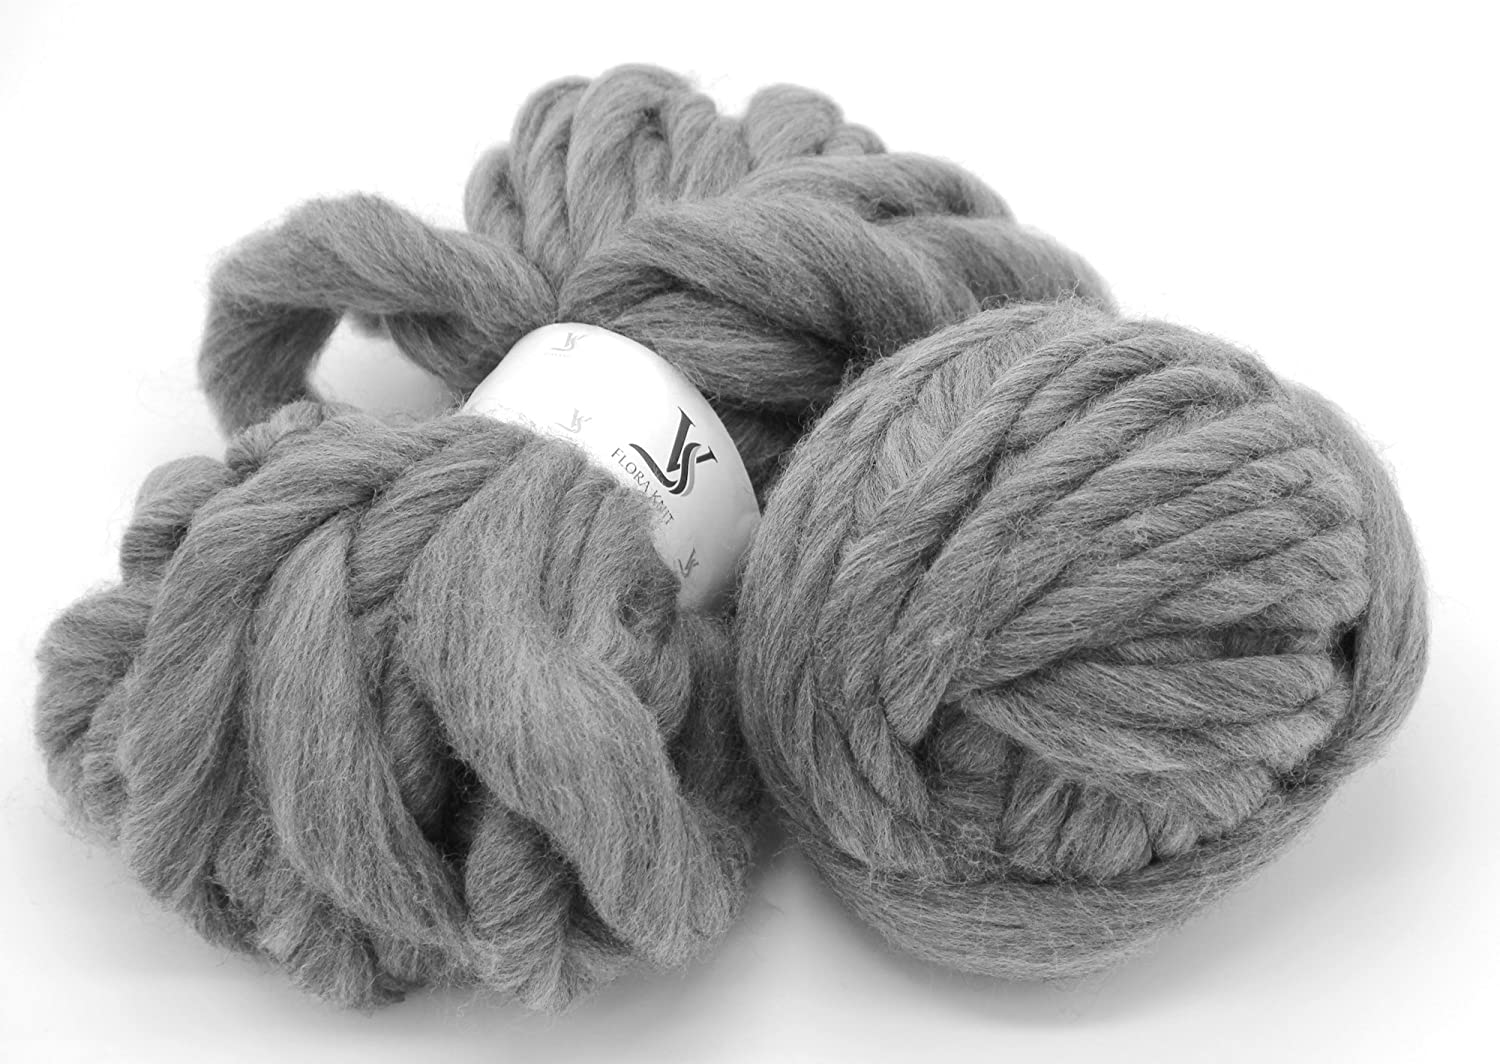 Merino Wool Big Chunky Yarn - Bulky Roving Yarn for Finger Knitting,Crocheting Felting,Making Rugs Blanket and Crafts by FLORAKNIT (Cream, Chunky-40mm-1.1LB) FLORAVOGUE BKY-1001-4CM-CREAM